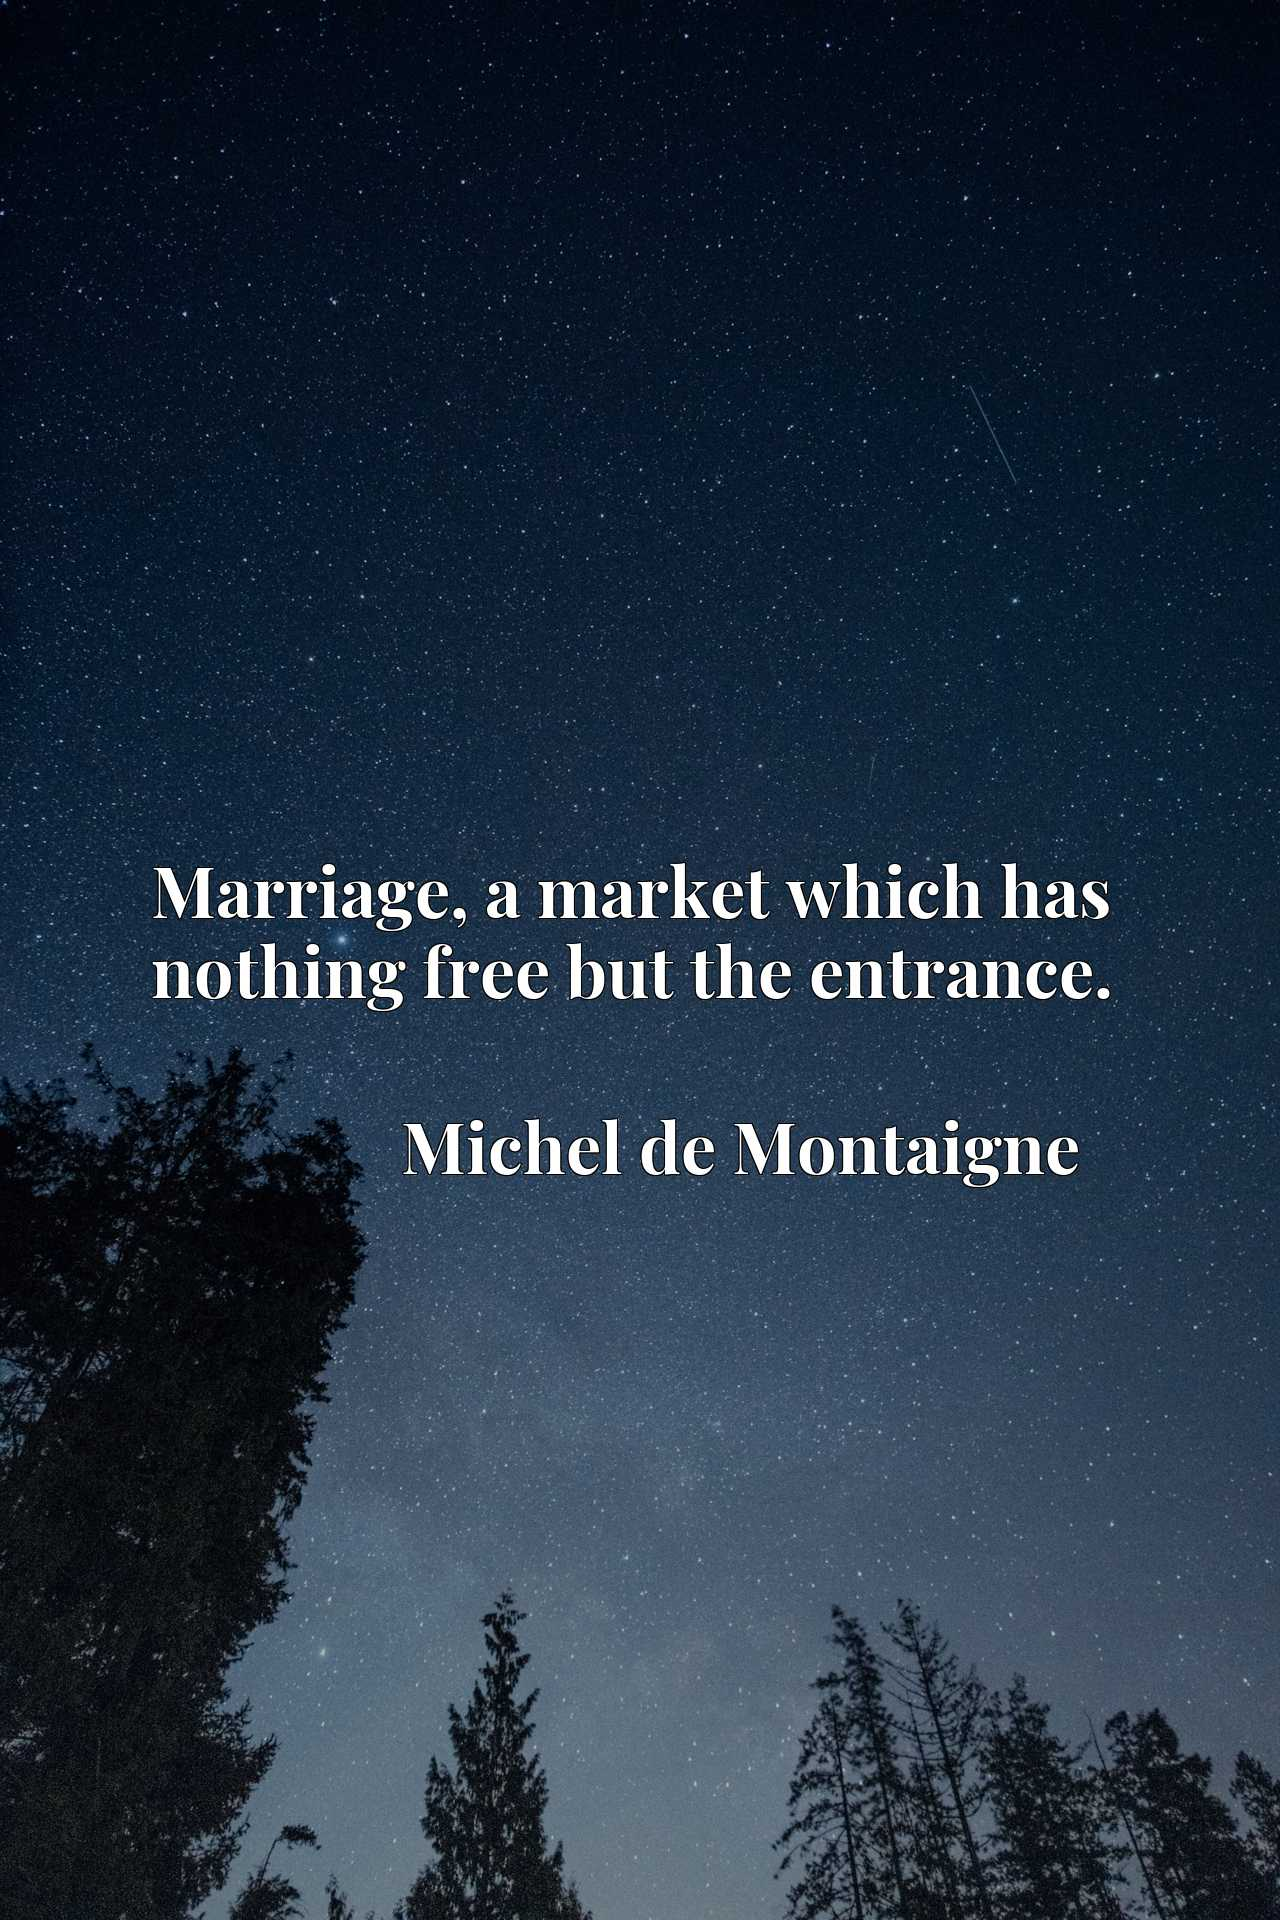 Quote Picture :Marriage, a market which has nothing free but the entrance.